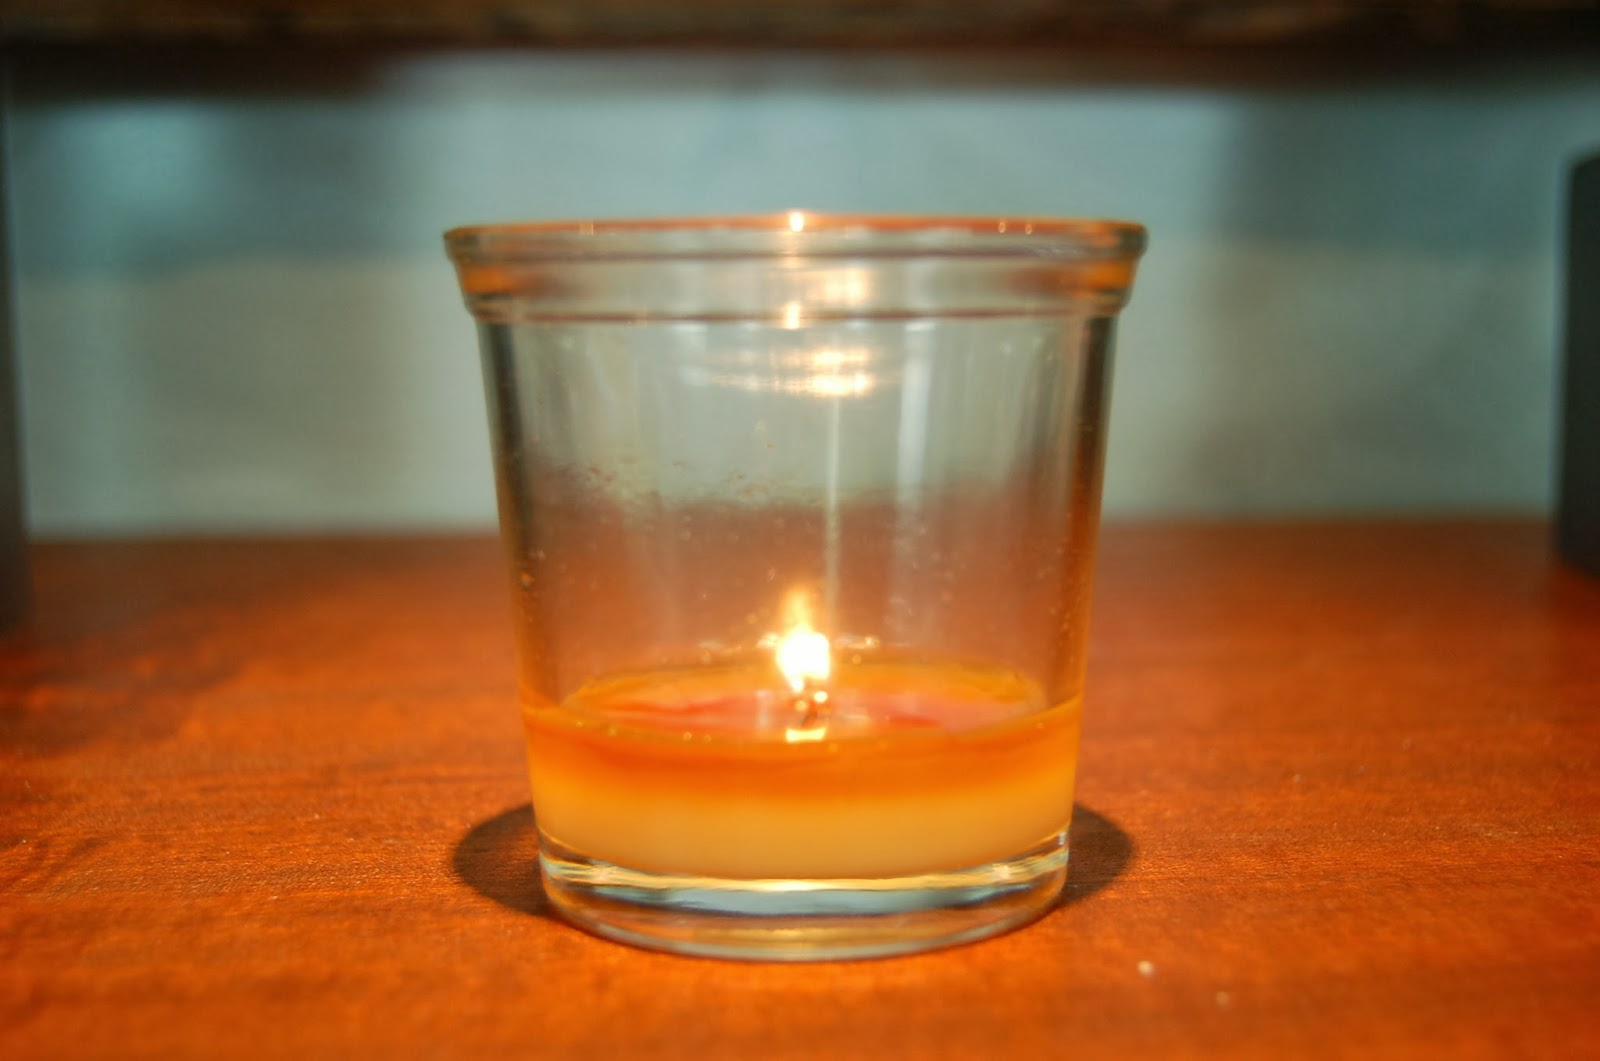 Candle burning evenly completely and cleanly perfection